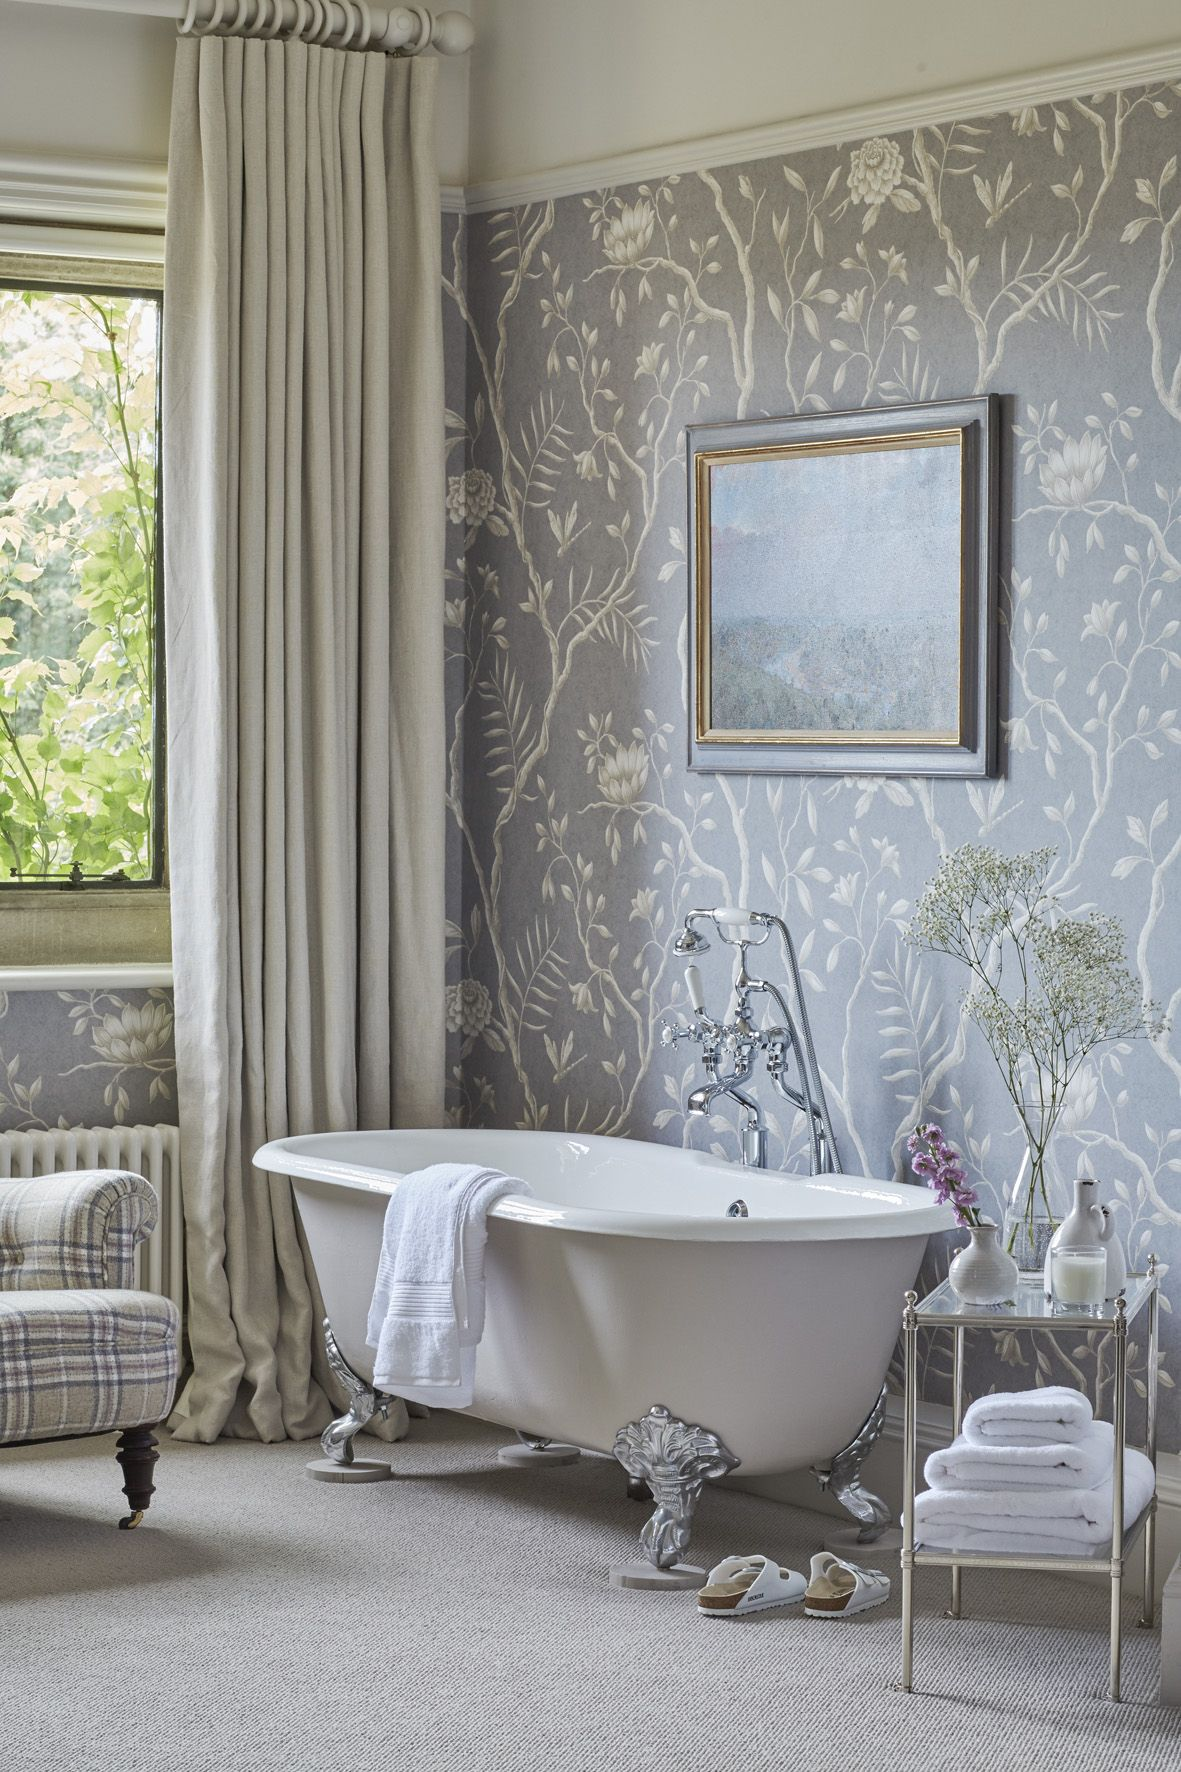 Sims hilditch interior design new forest manor house en suite